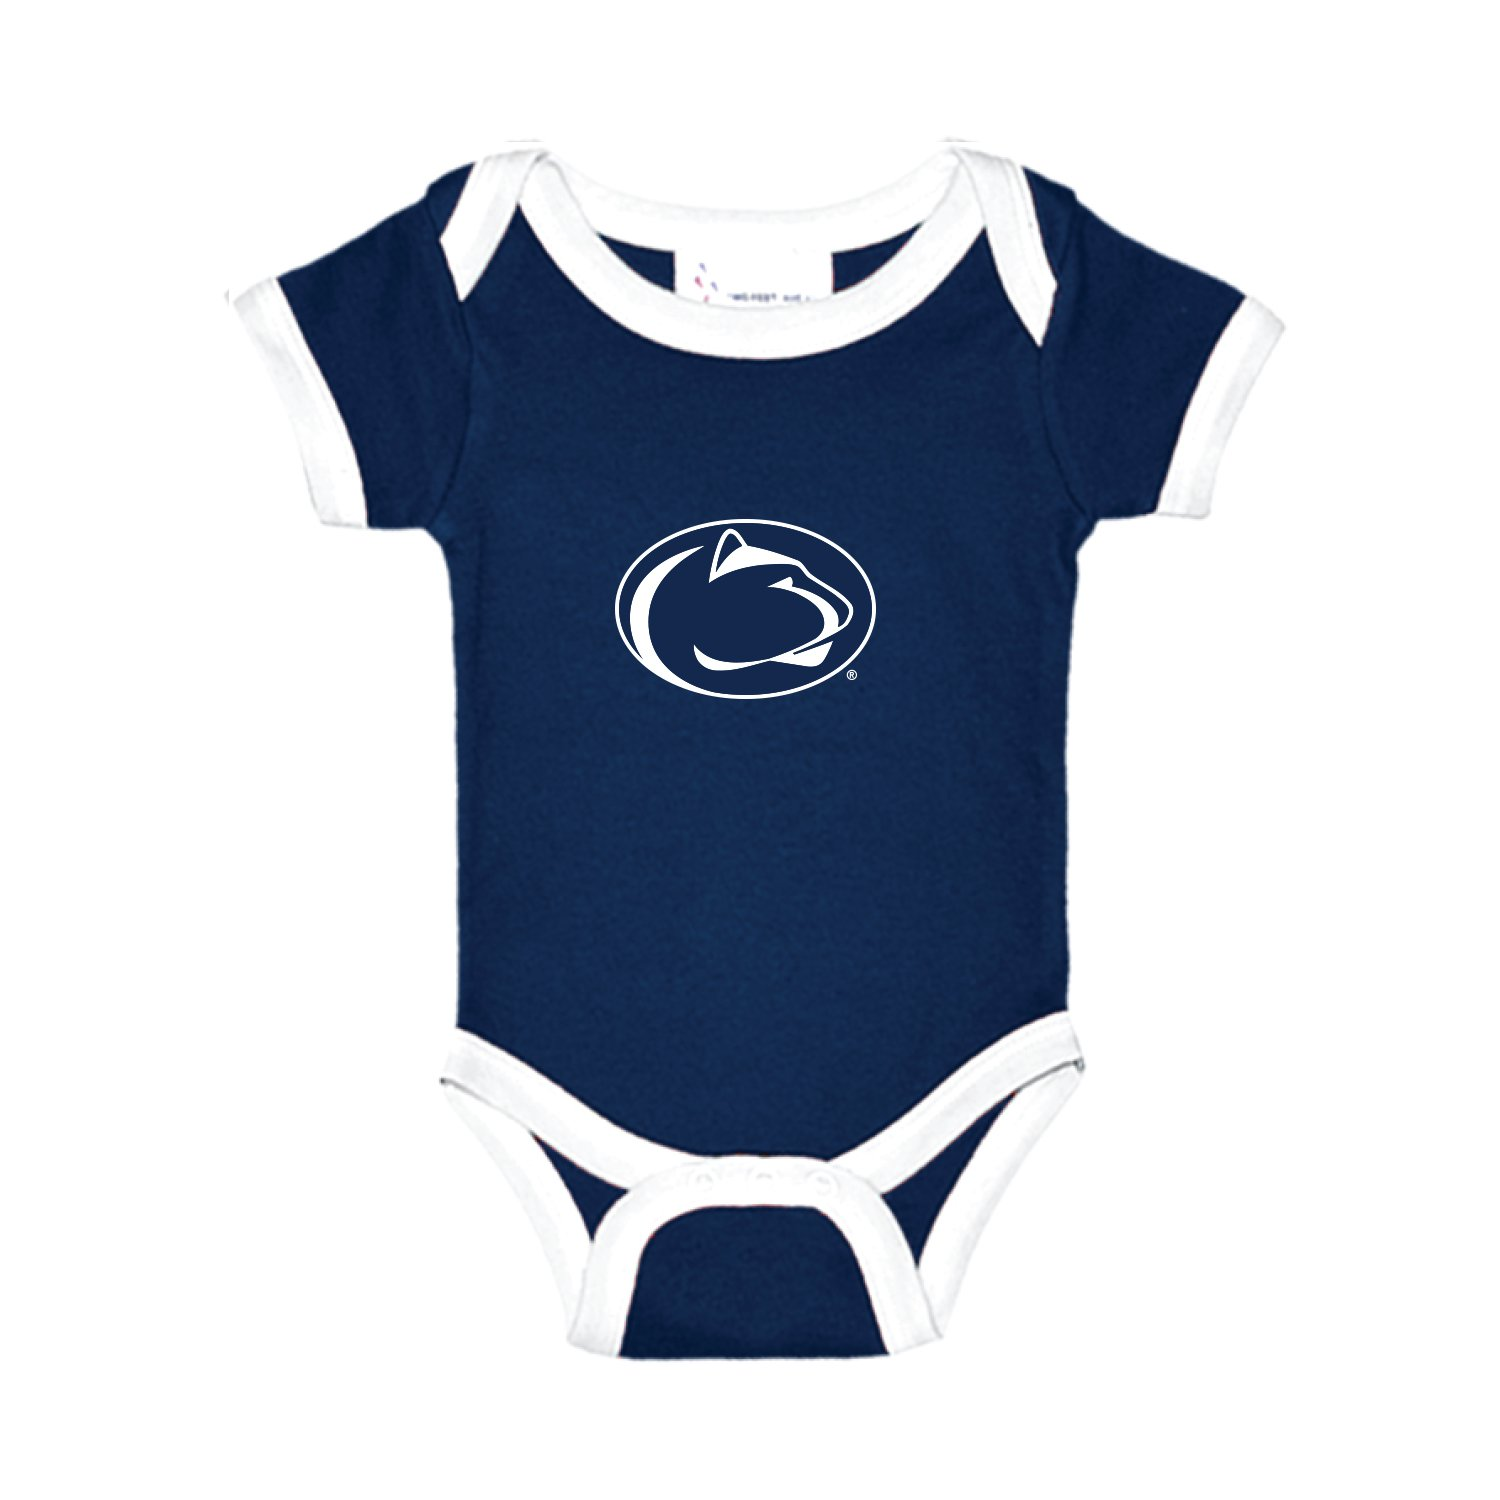 Penn State Nittany Lions Two Tone NCAA College Newborn Infant Baby Creeper